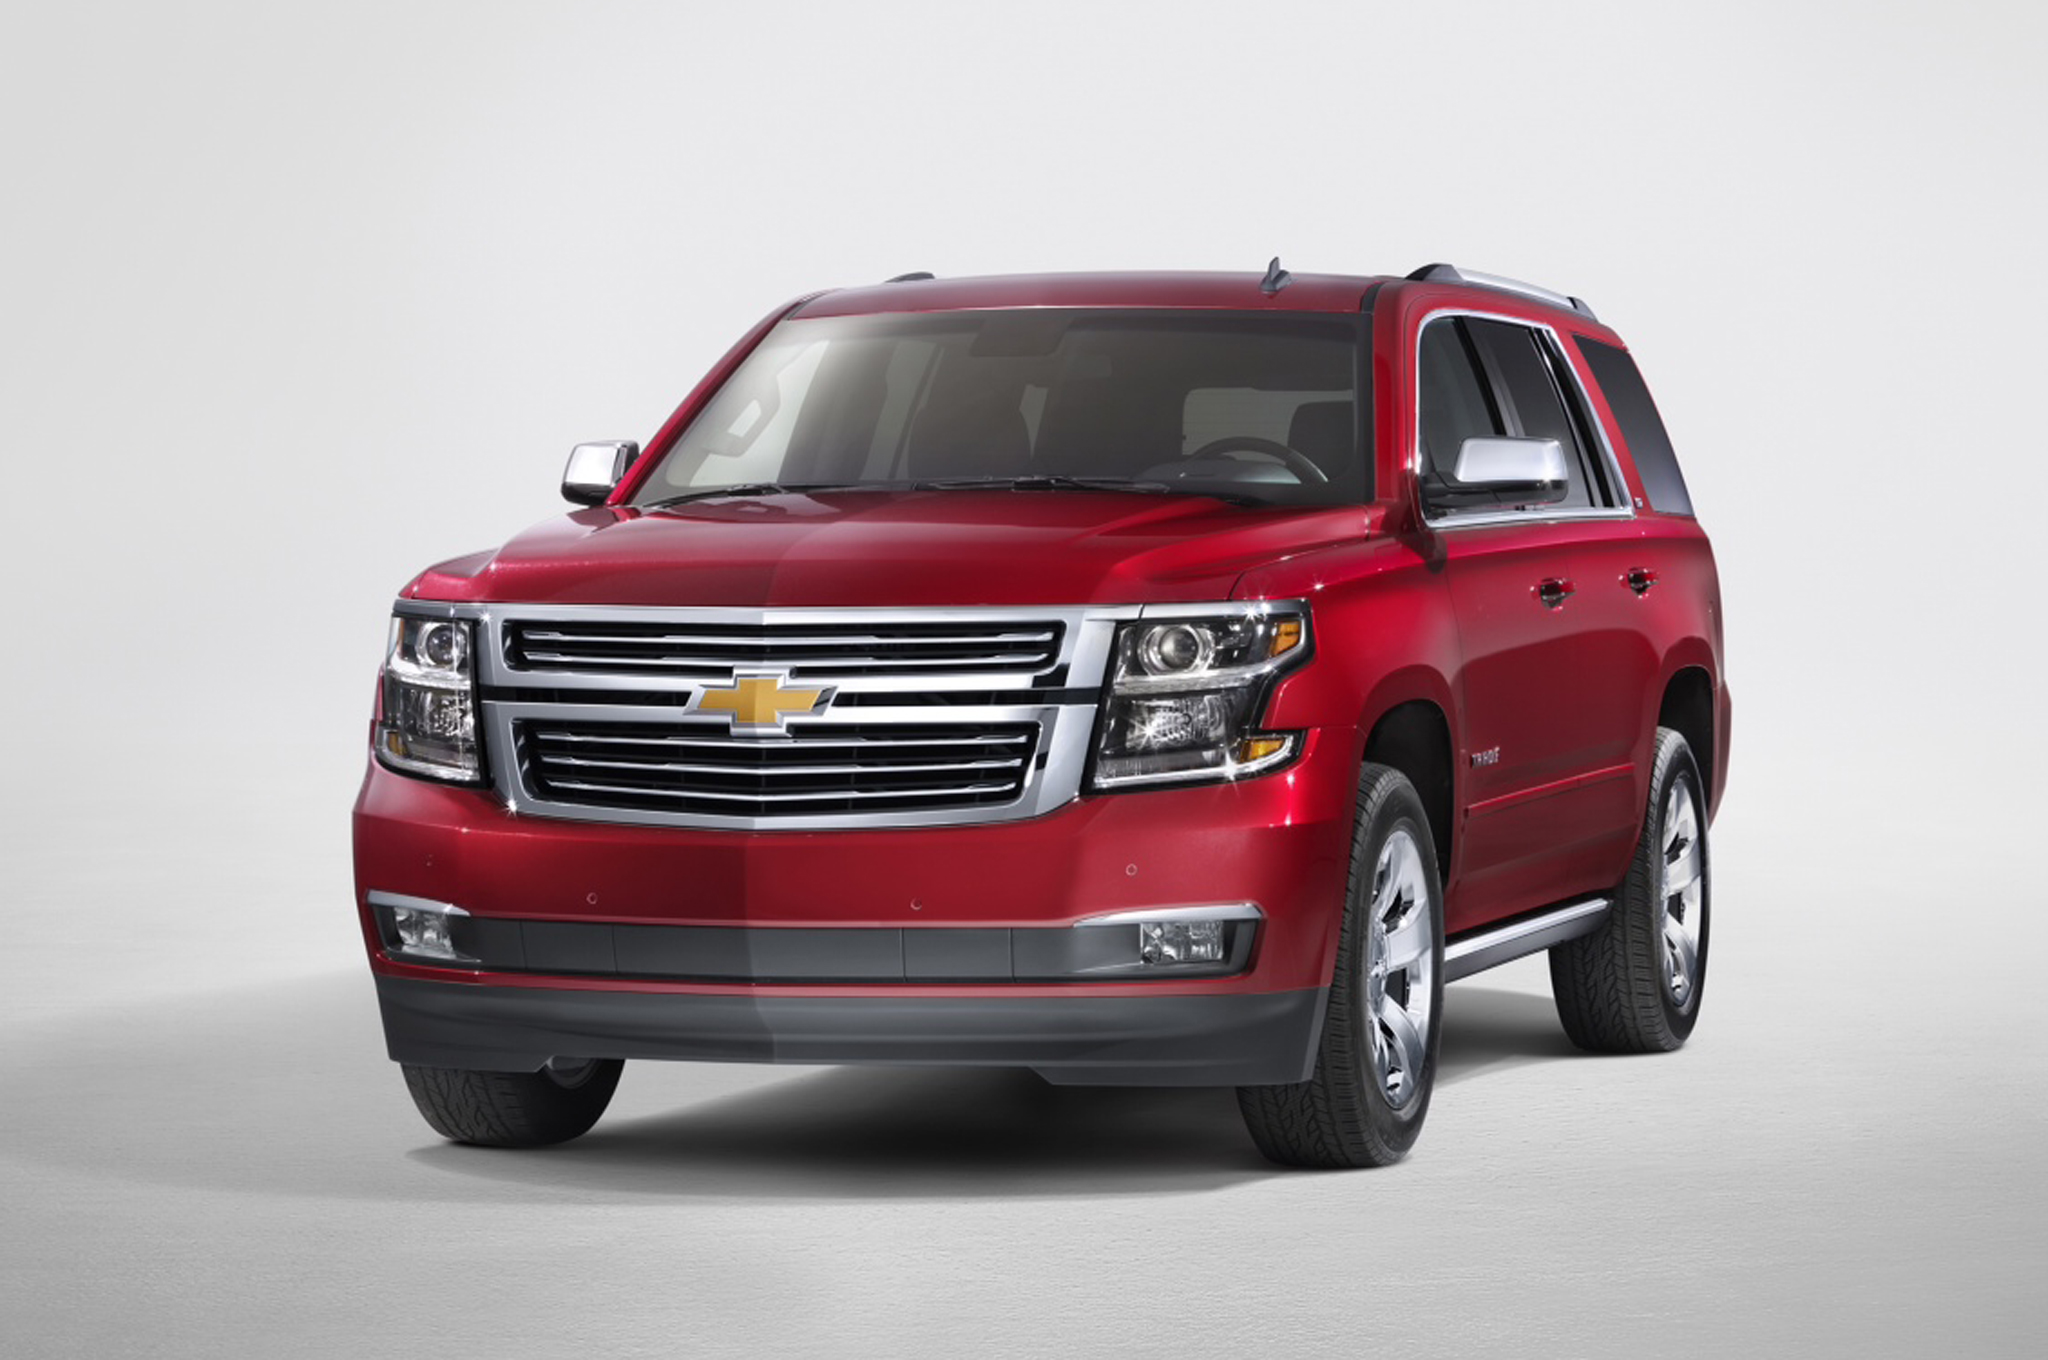 2015 Chevrolet Tahoe Front End